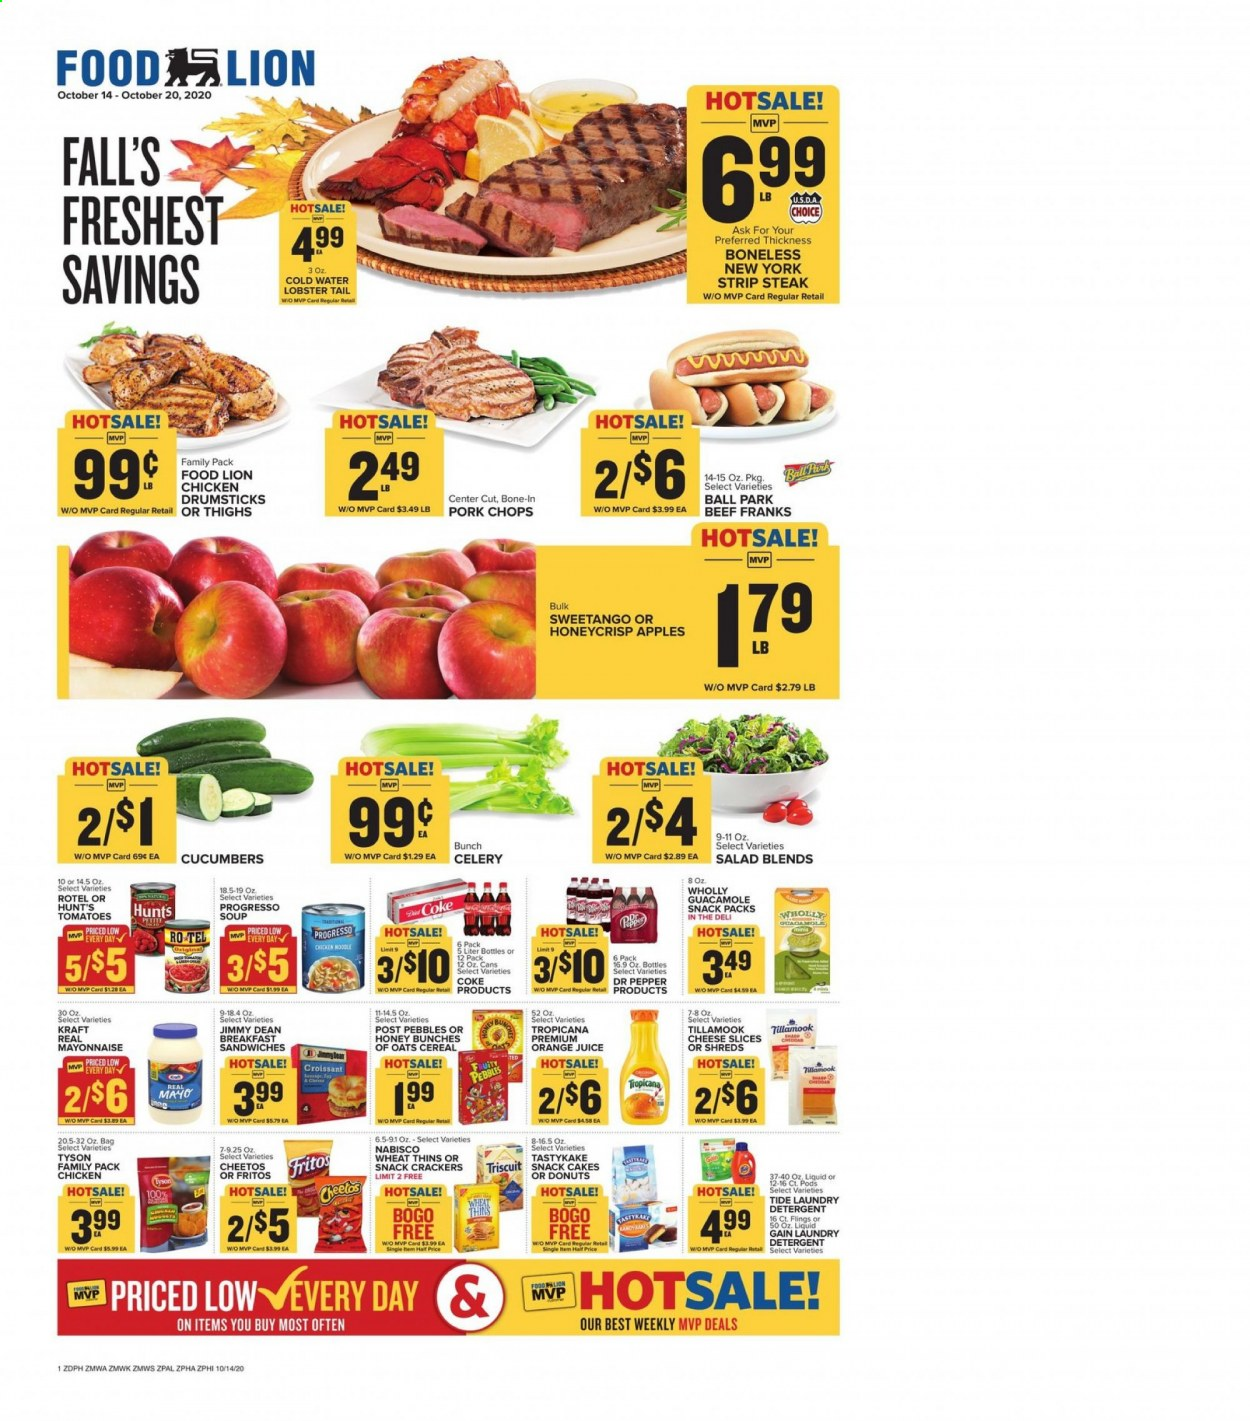 Food Lion Flyer - 10.14.2020 - 10.20.2020 - Sales products - apples, bag, beef meat, celery, cereals, coca-cola, crackers, croissants, cucumbers, detergent, fritos, gain, lobster, mayonnaise, tide, tomatoes, honey, pork chops, pork meat, cheese slices, cheetos, chicken, chicken drumsticks, noodle, oats, orange juice, orange, steak, cheese, juice, cake, soup, pepper, snack, donuts, cereal, salad, ball, guacamole, liquid, bunches, laundry detergent, lobster tail, family pack, apple, tomato, donut. Page 1.